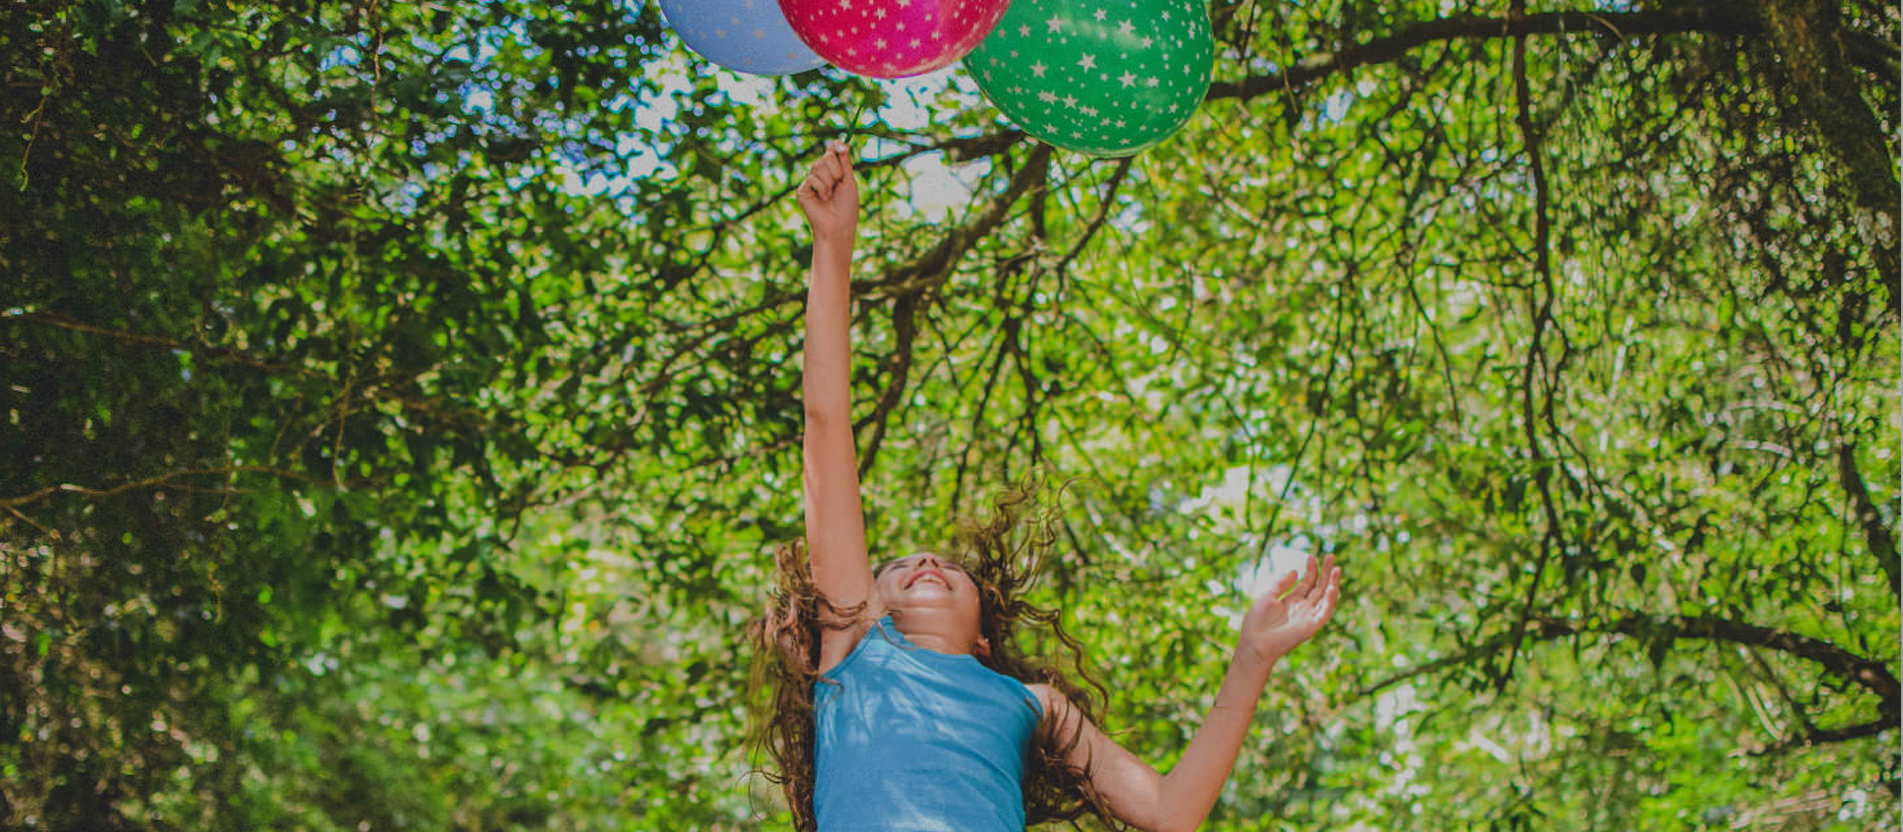 child with ballons